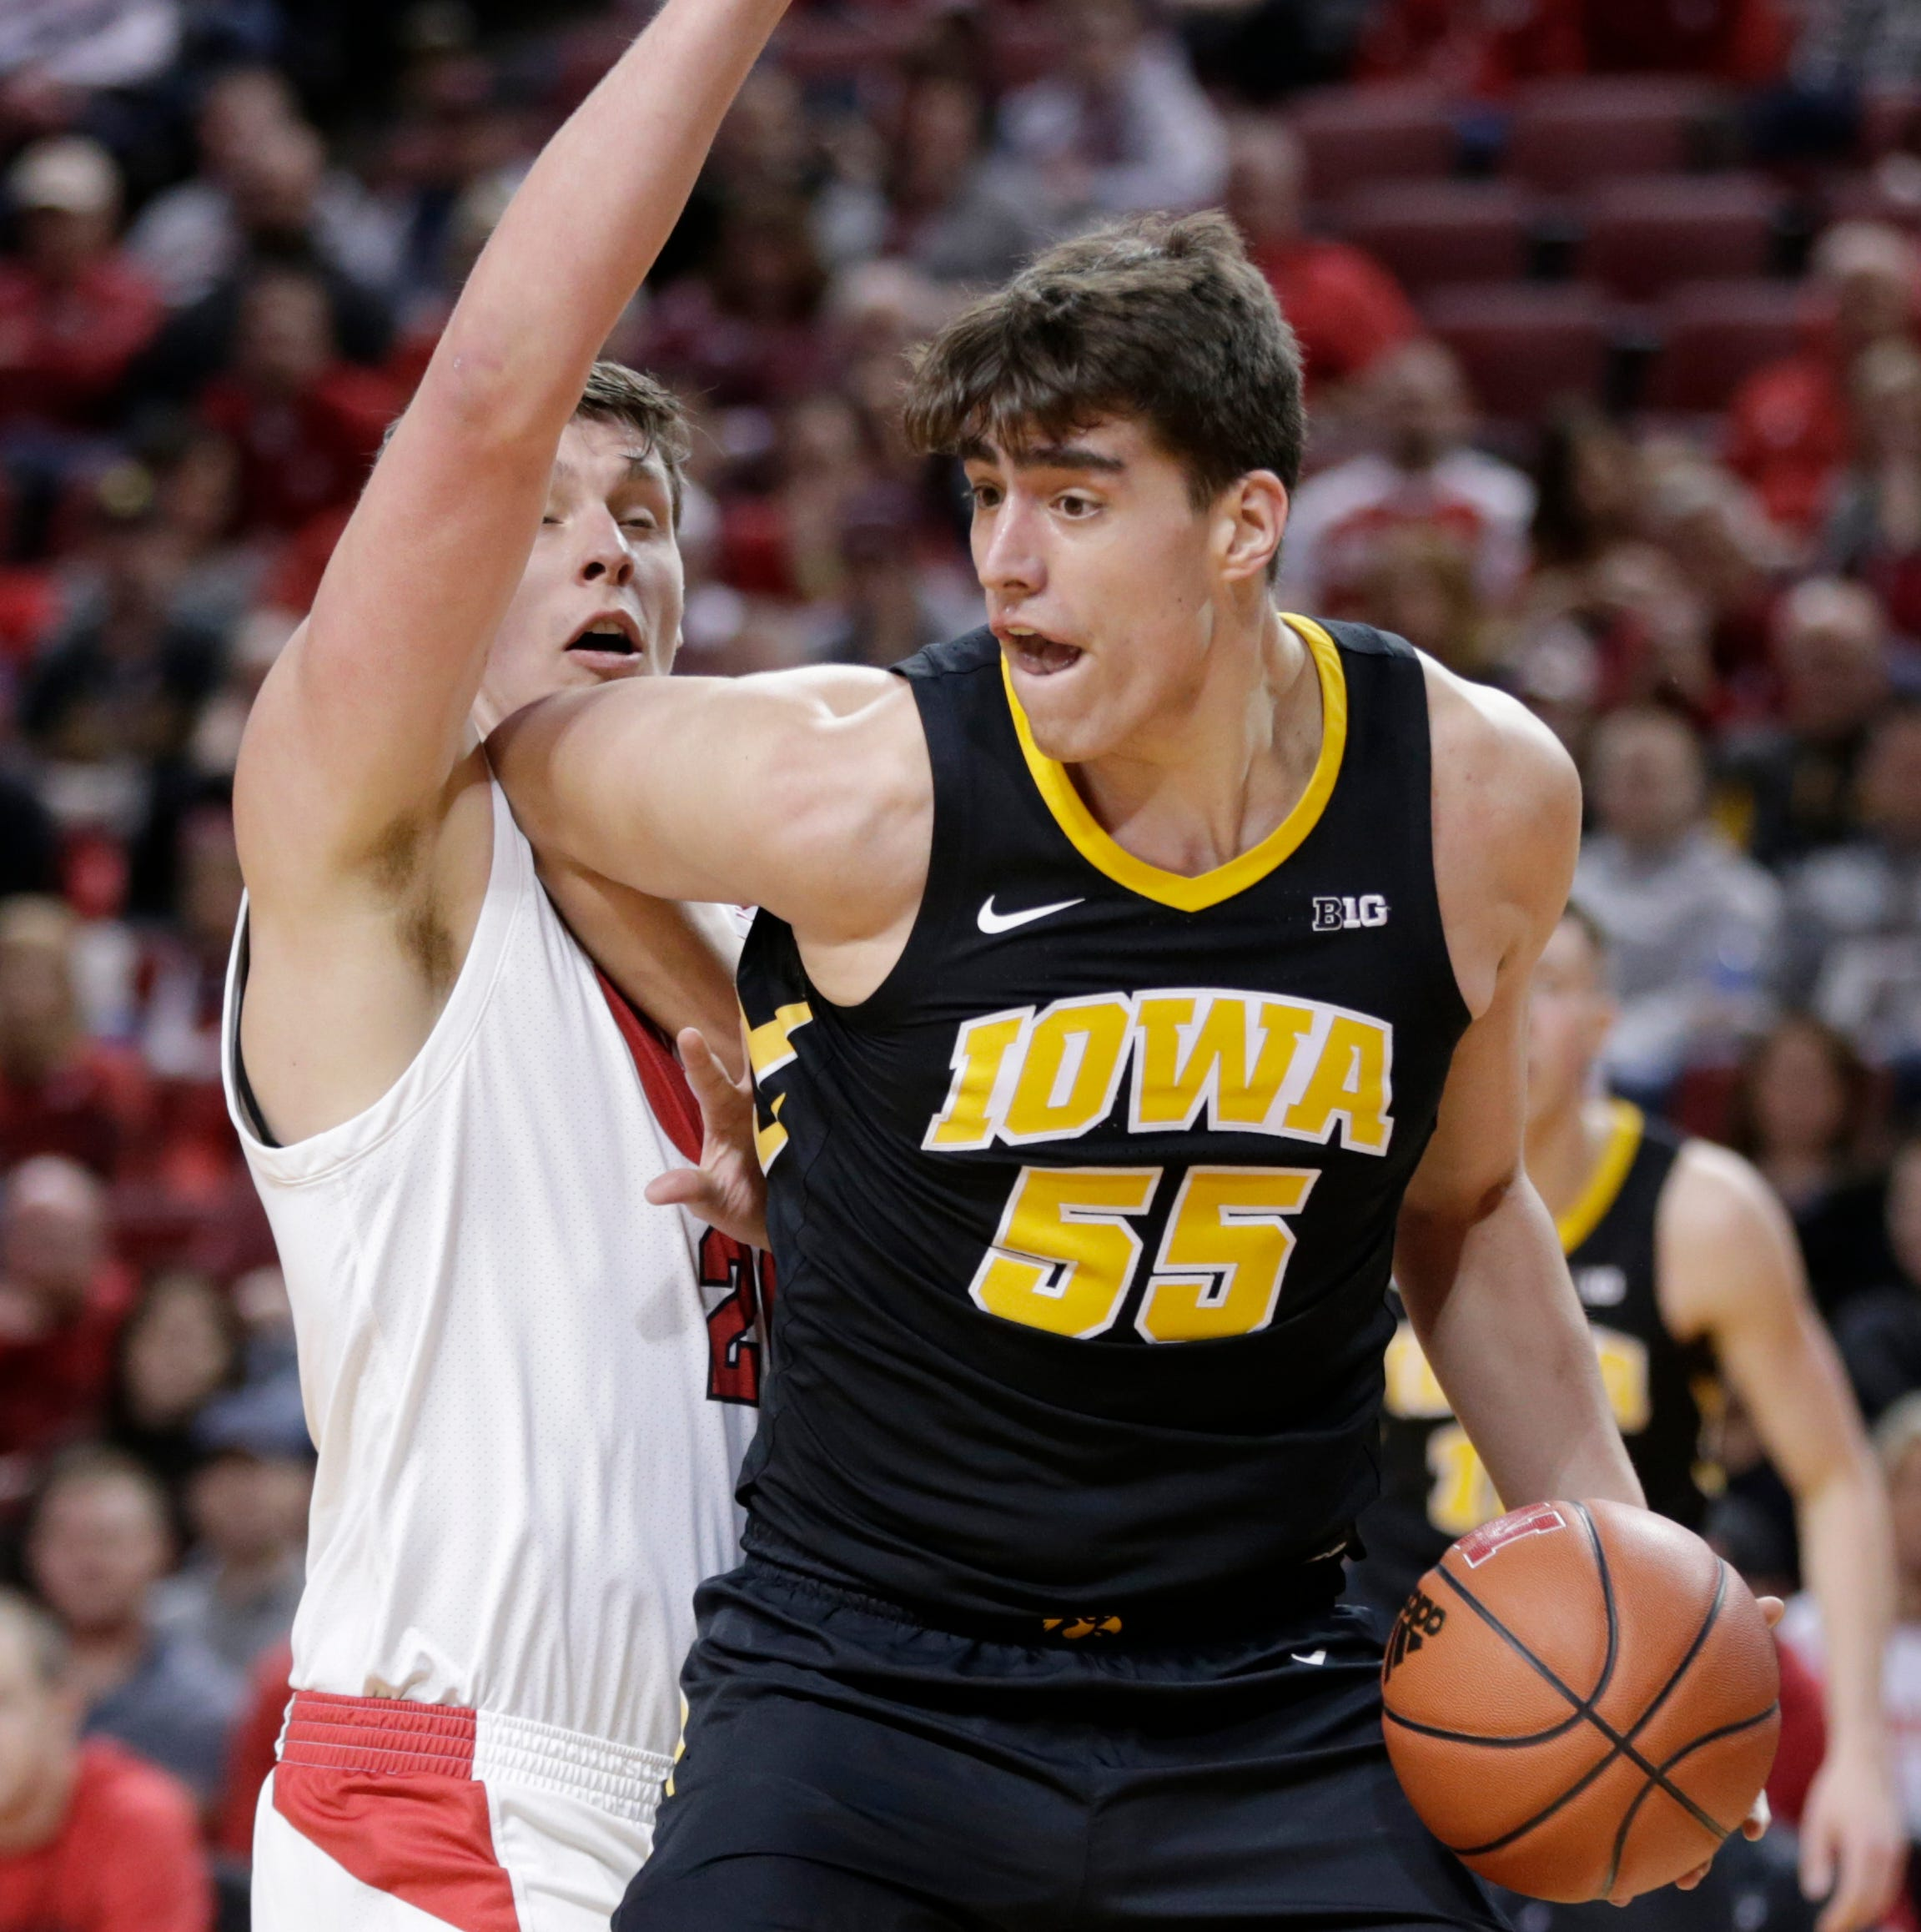 McCaffery returns to Iowa bench for brutal loss: 'Nobody's going to feel sorry for them'